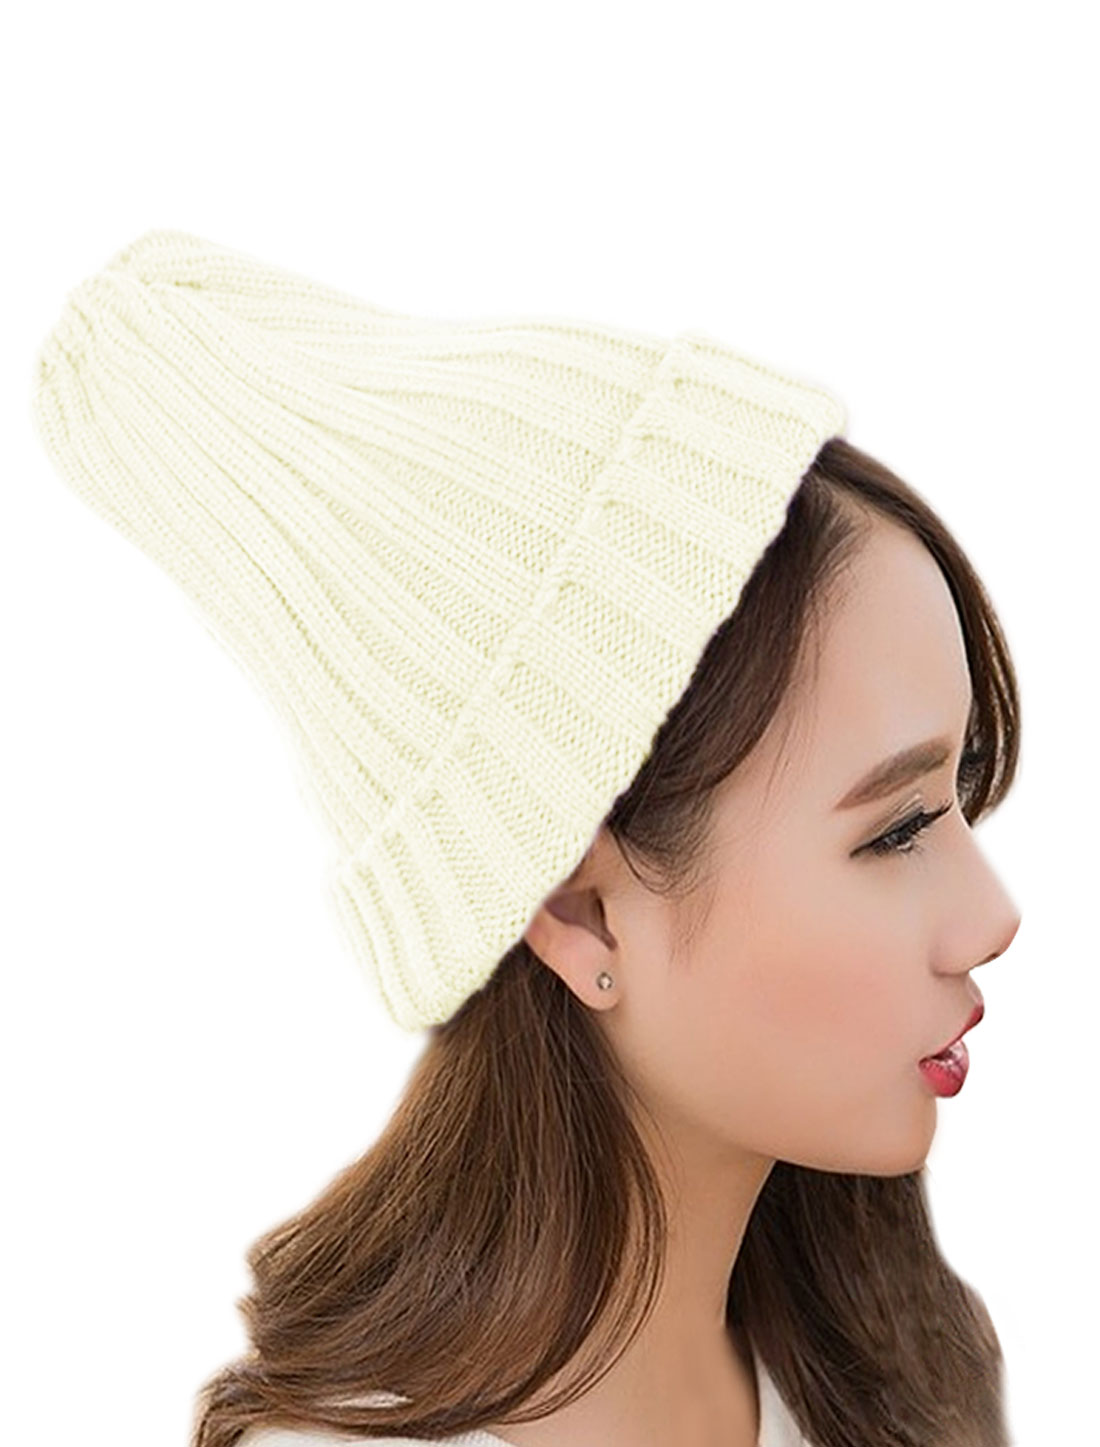 Unisex Chunky Casual Slouchy Ribbed Cuffed Knitted Headwear Hat White